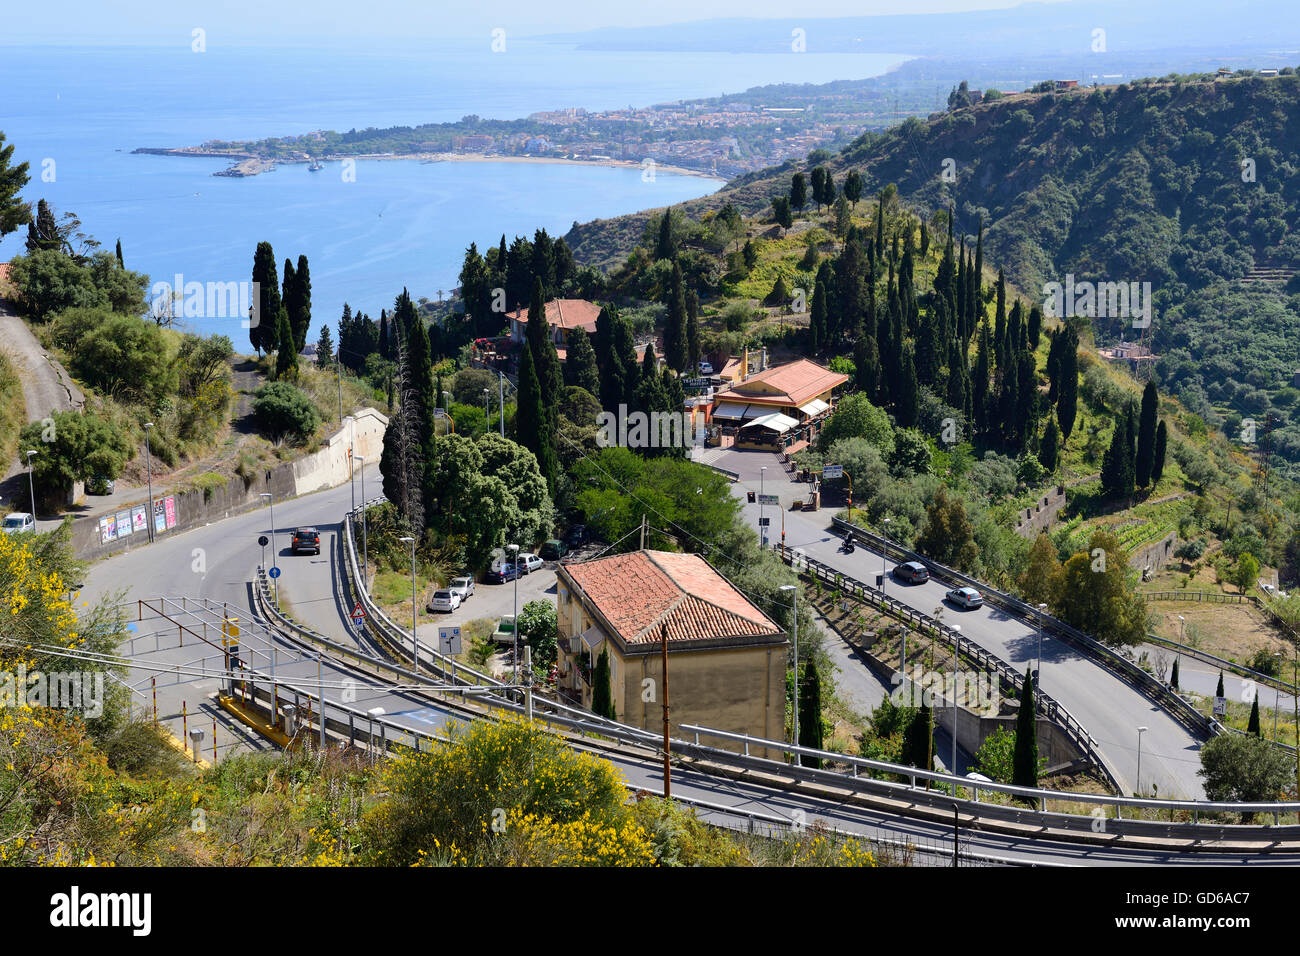 View of winding road leading to Taormina, Sicily, Italy - Stock Image